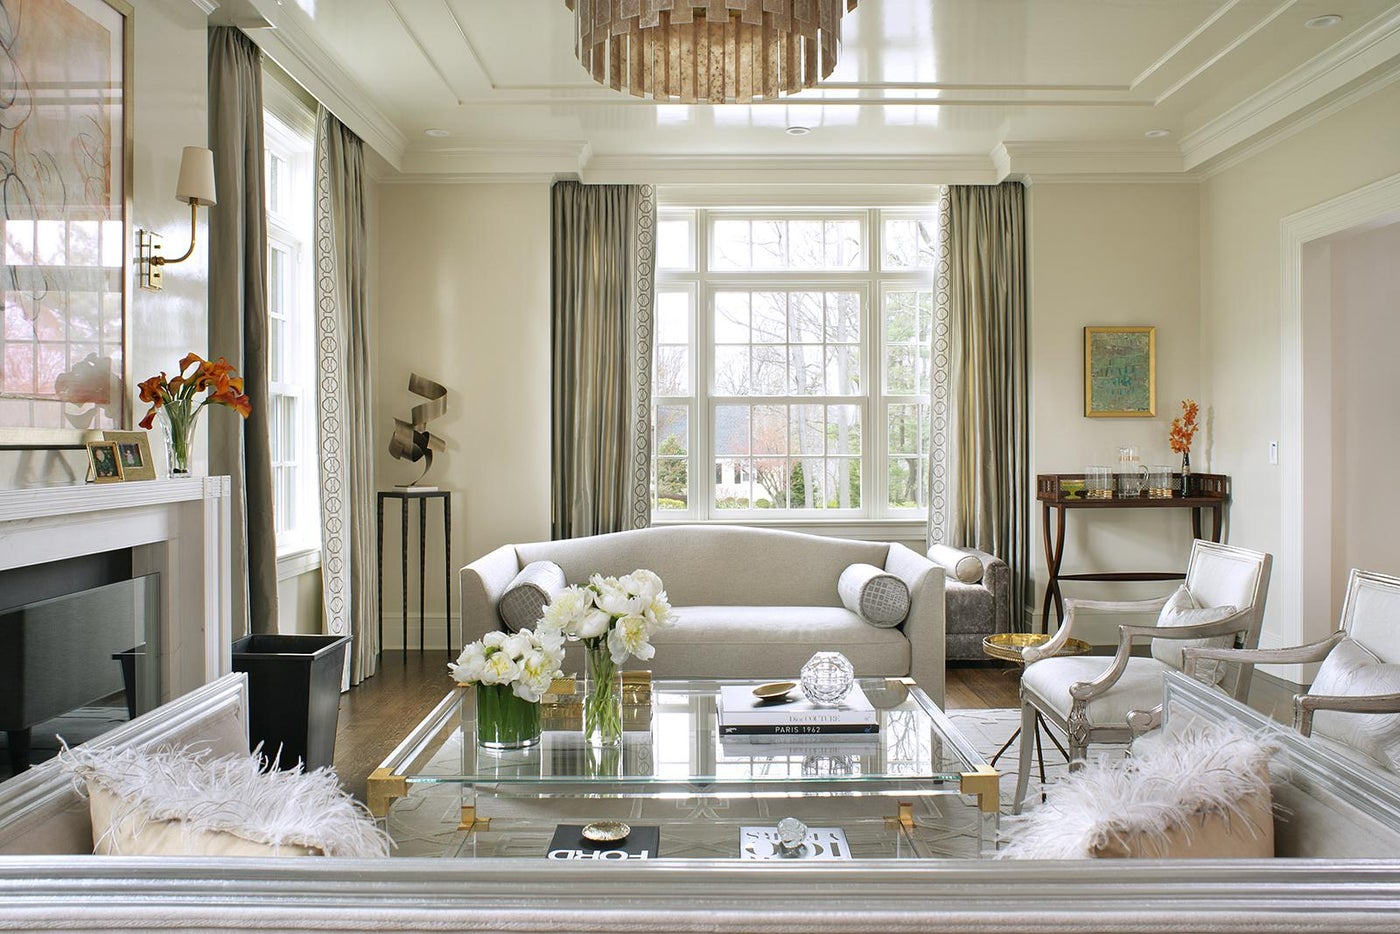 Living Room with high gloss paint and gold accents